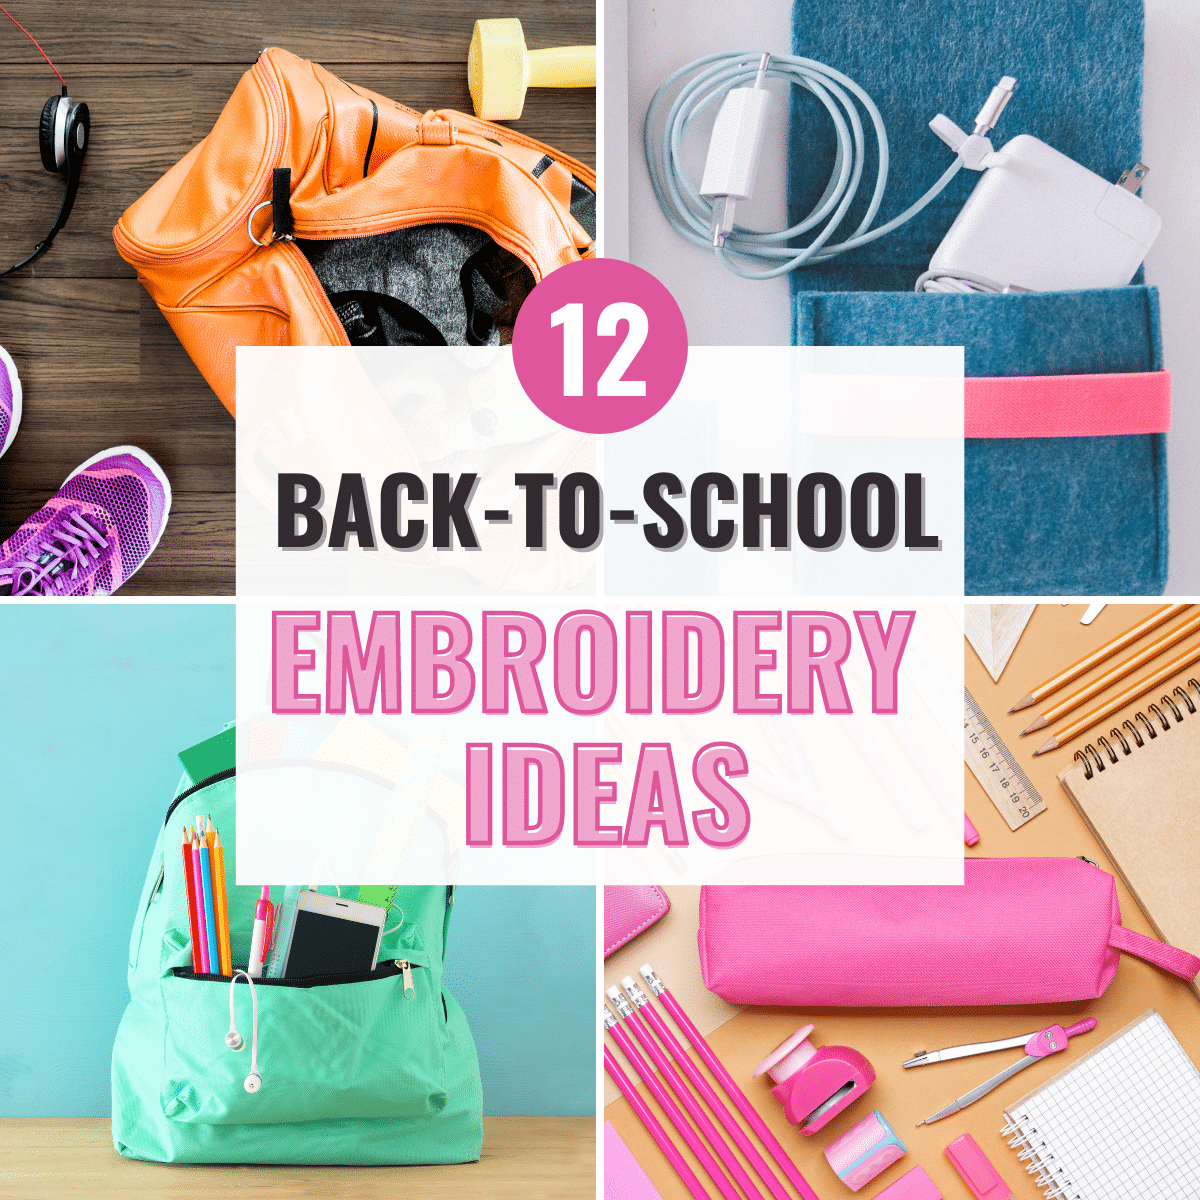 12 Ideas for Back-to-School Embroidery Projects